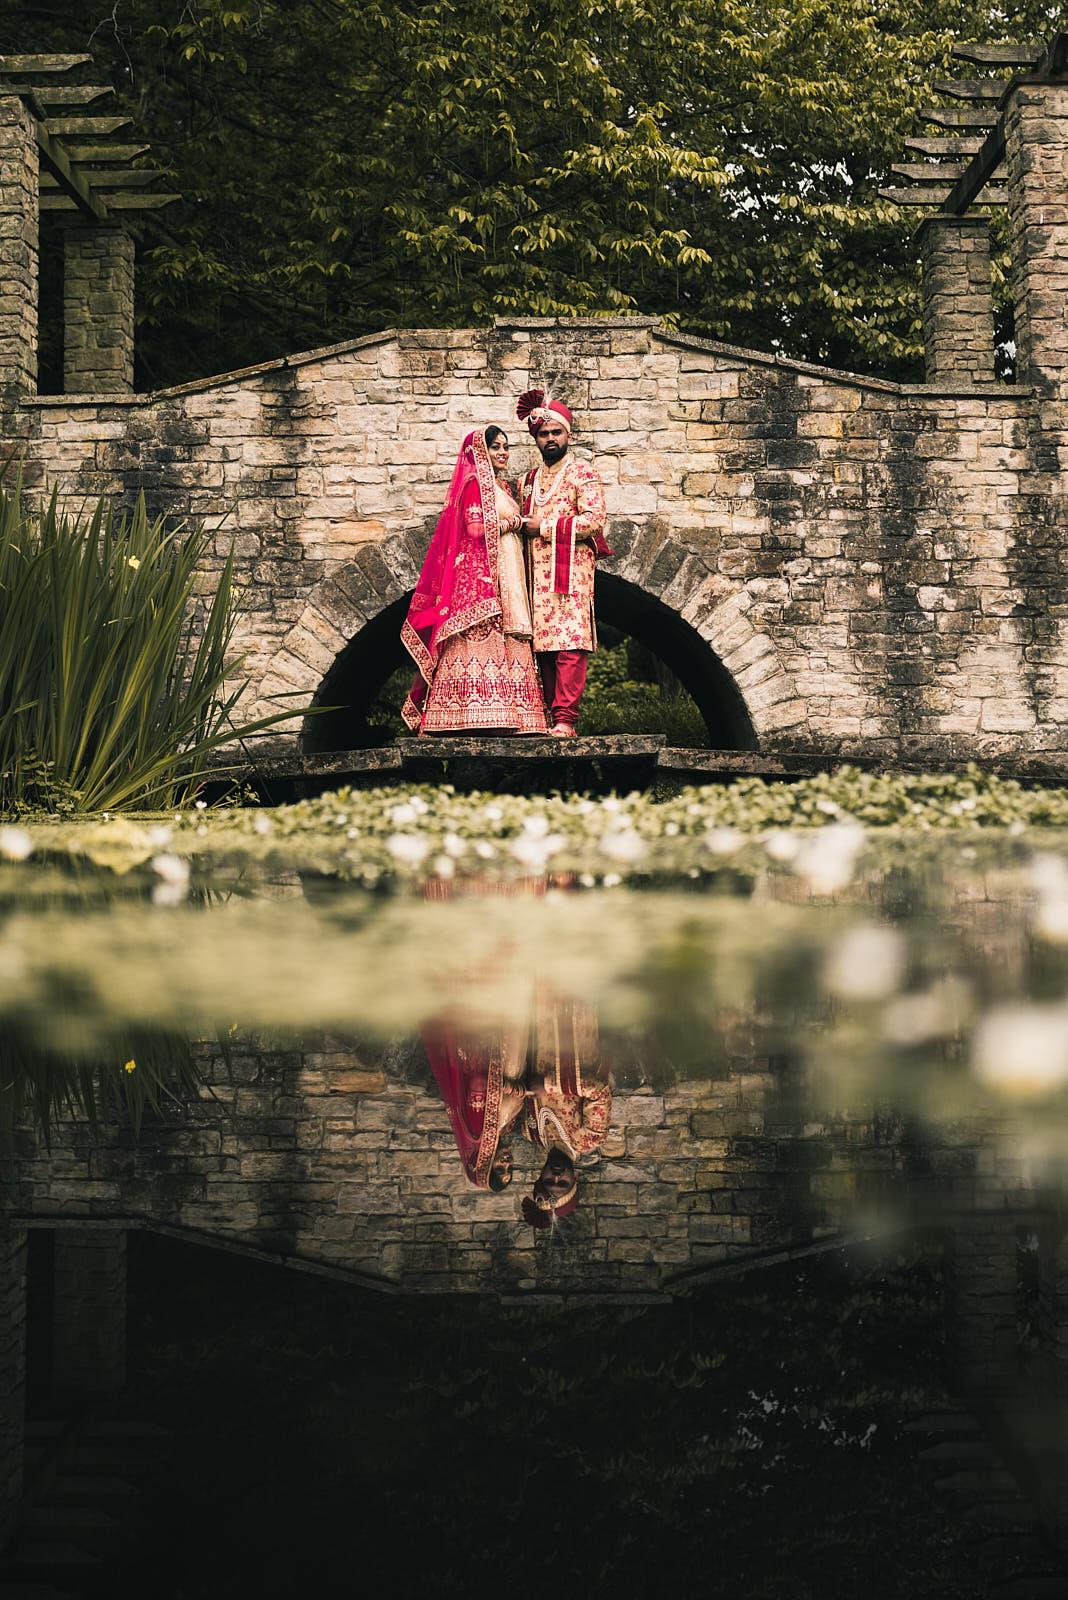 Indian Wedding Photography in London Pristine View Photography - Bedfordshire, Hertfordshire, London and surrounding areas.